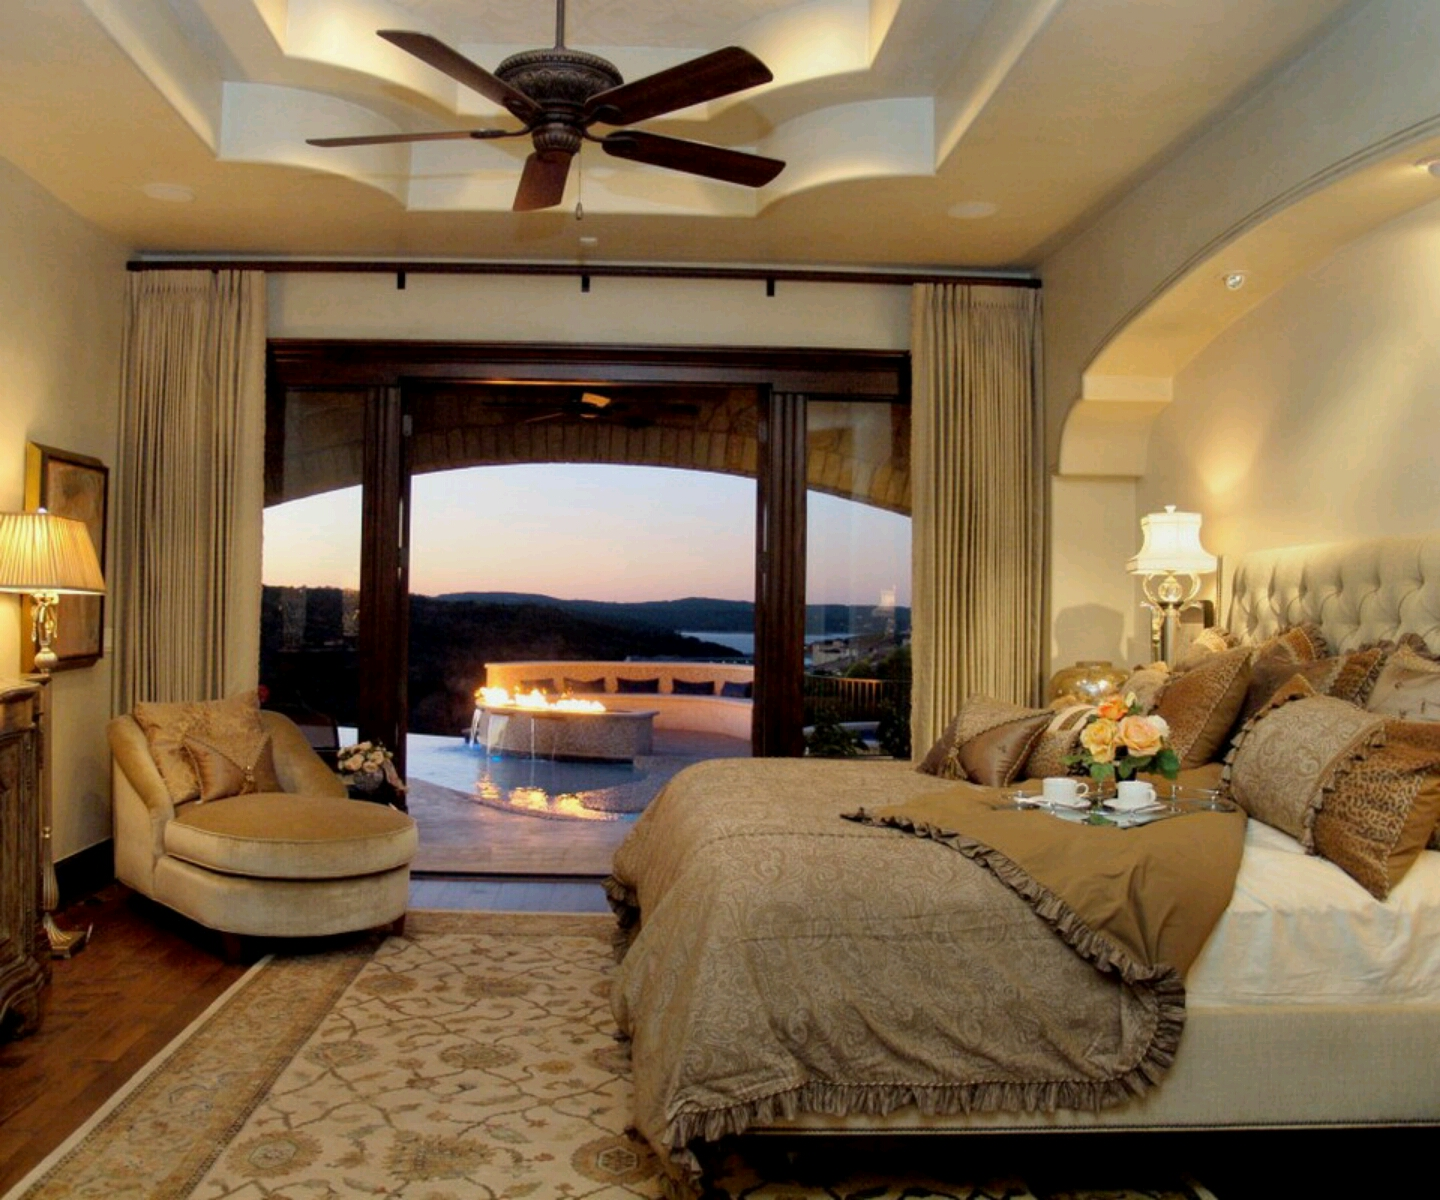 New home designs latest modern bedrooms designs ceiling for Modern bedroom designs